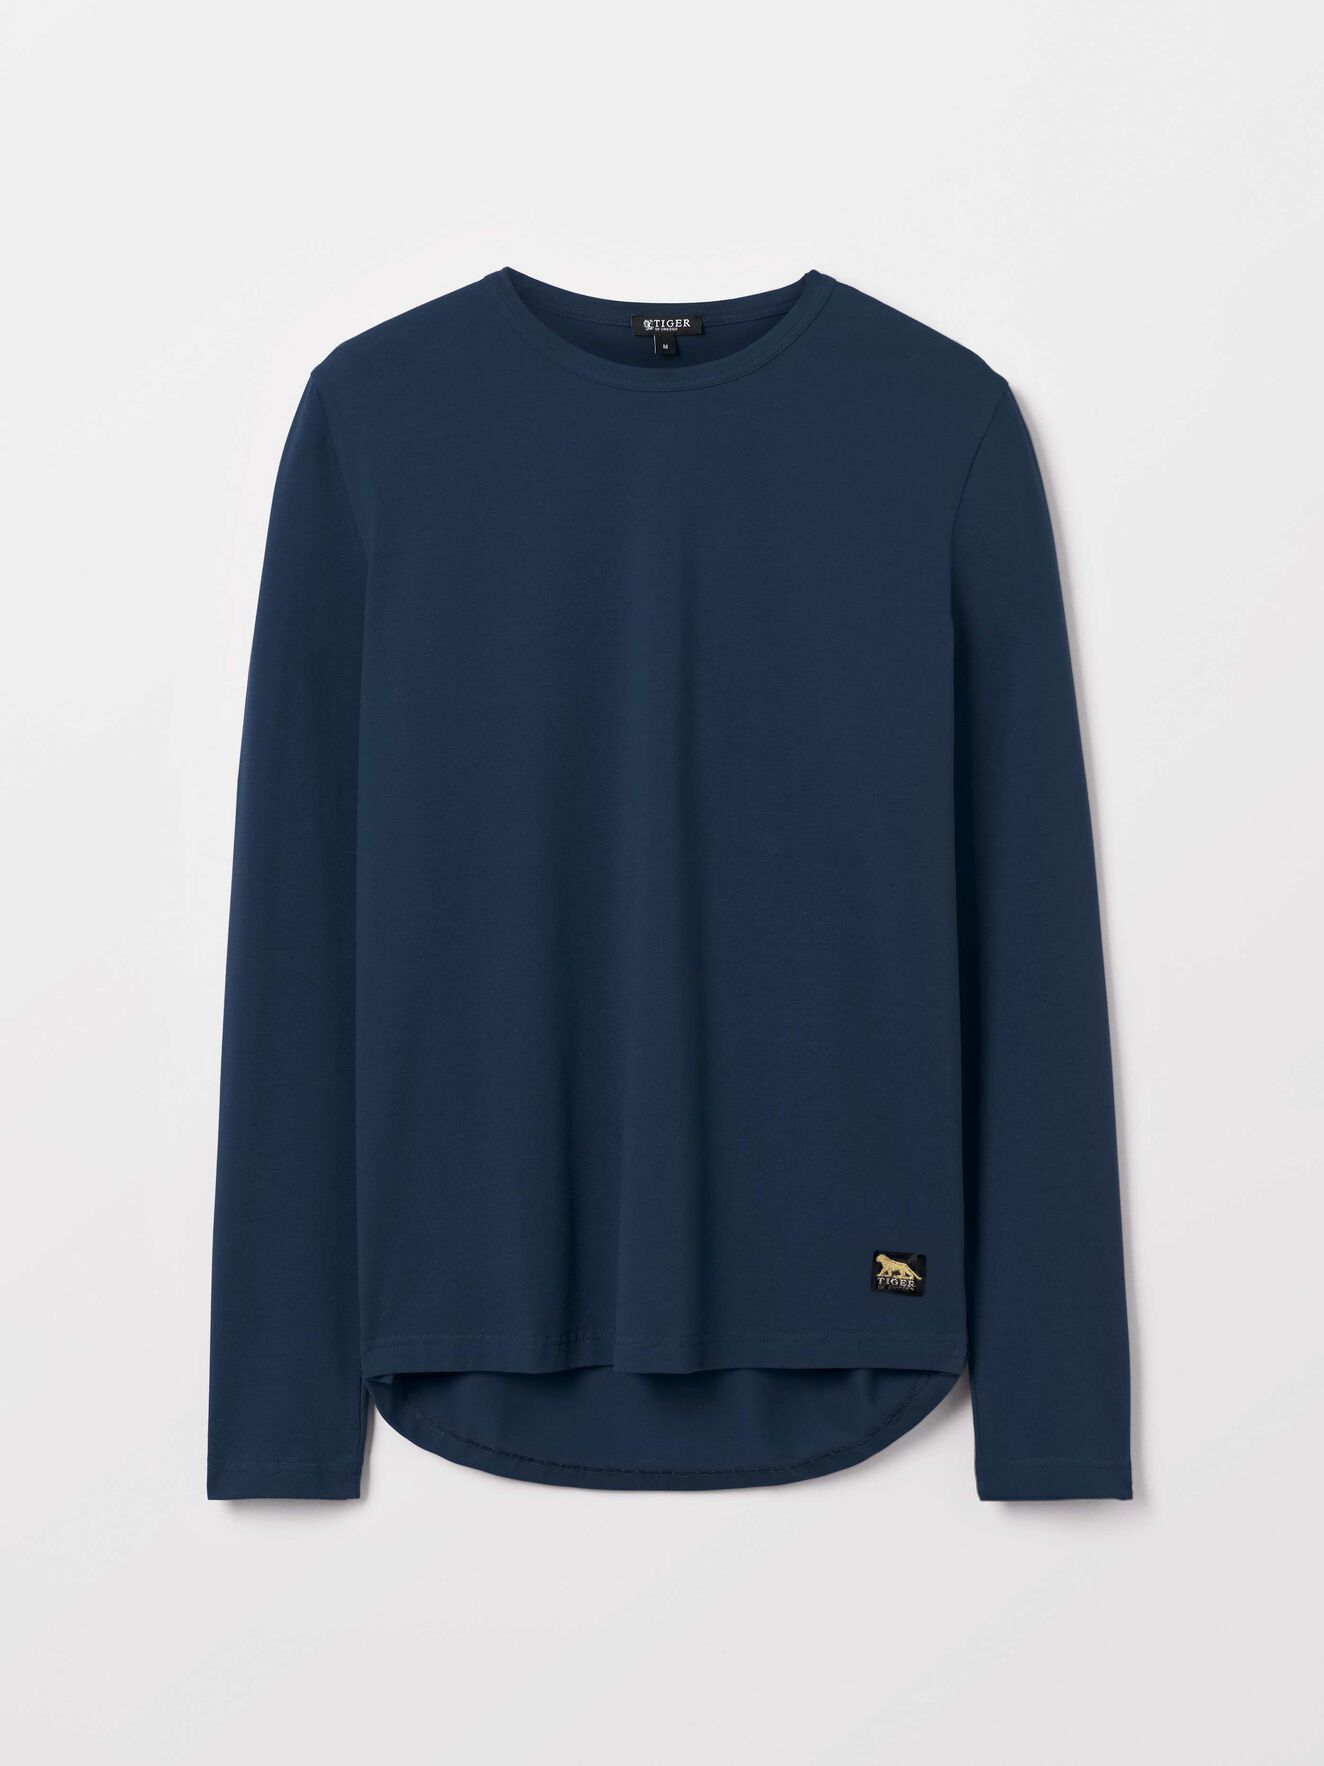 Dolin T-Shirt in Royal Blue from Tiger of Sweden